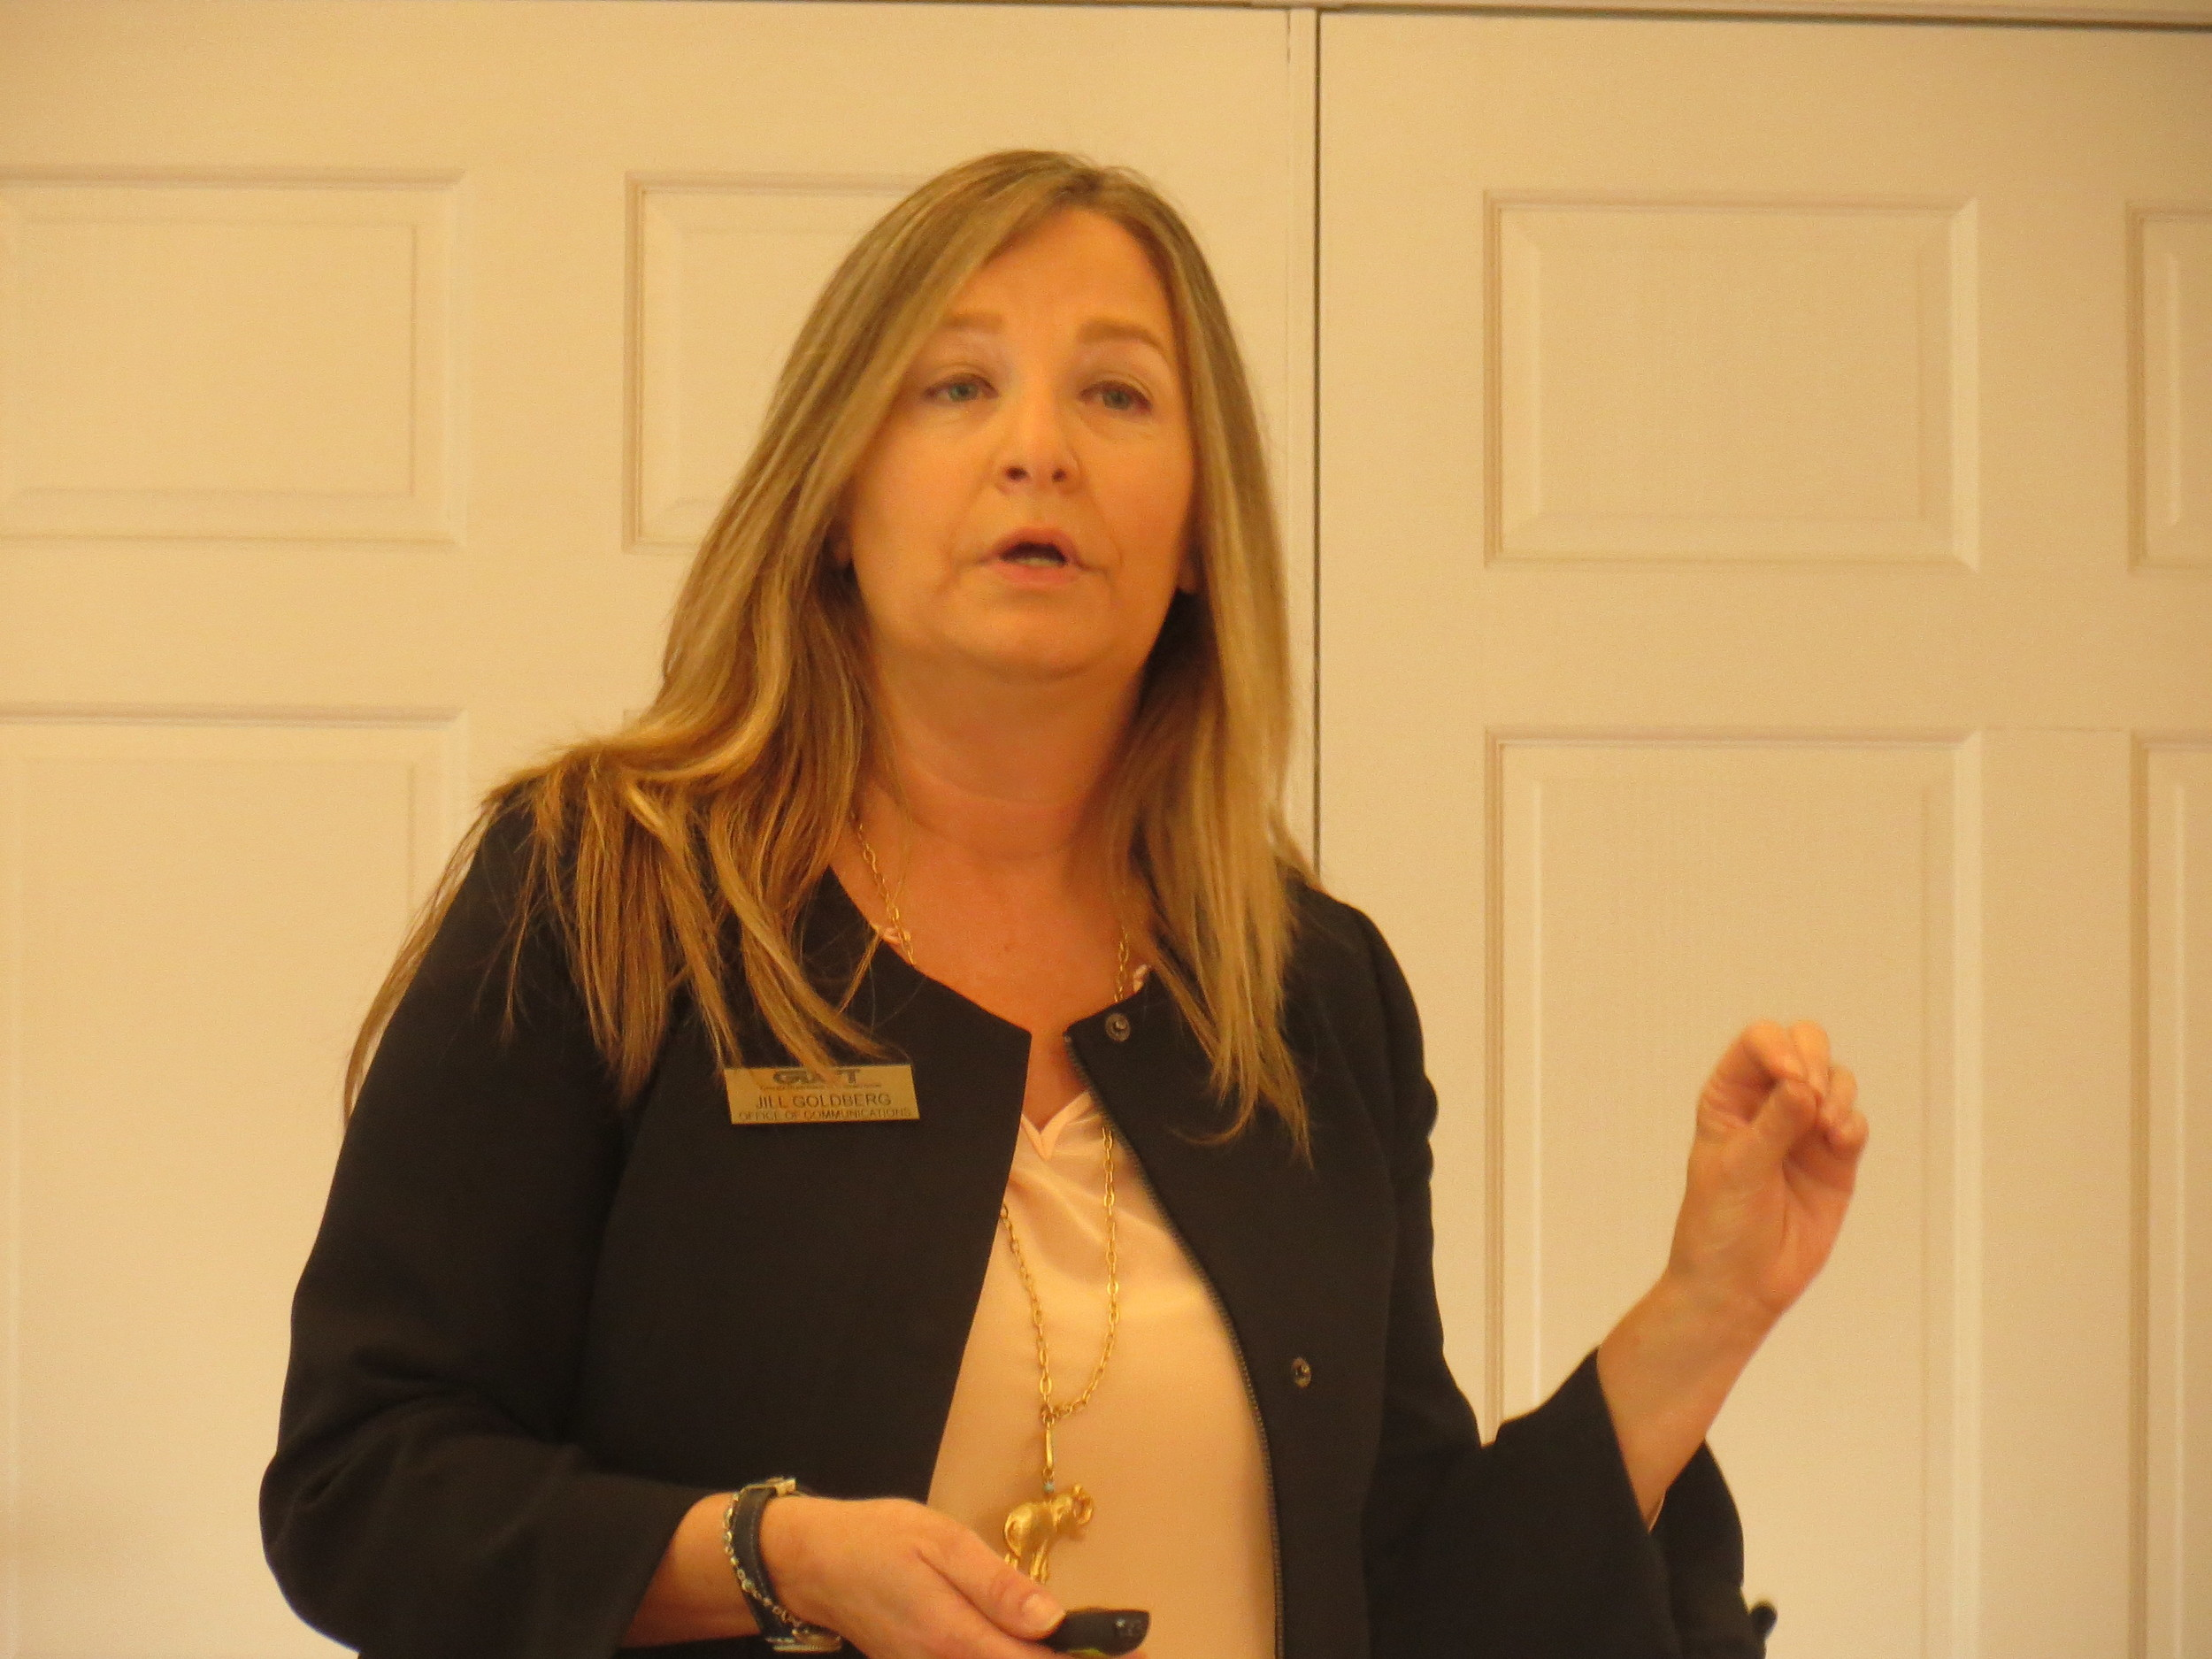 GDOT representative Jill Goldberg spoke at the Cartersville-Bartow County Chamber of Commerce Monday morning.